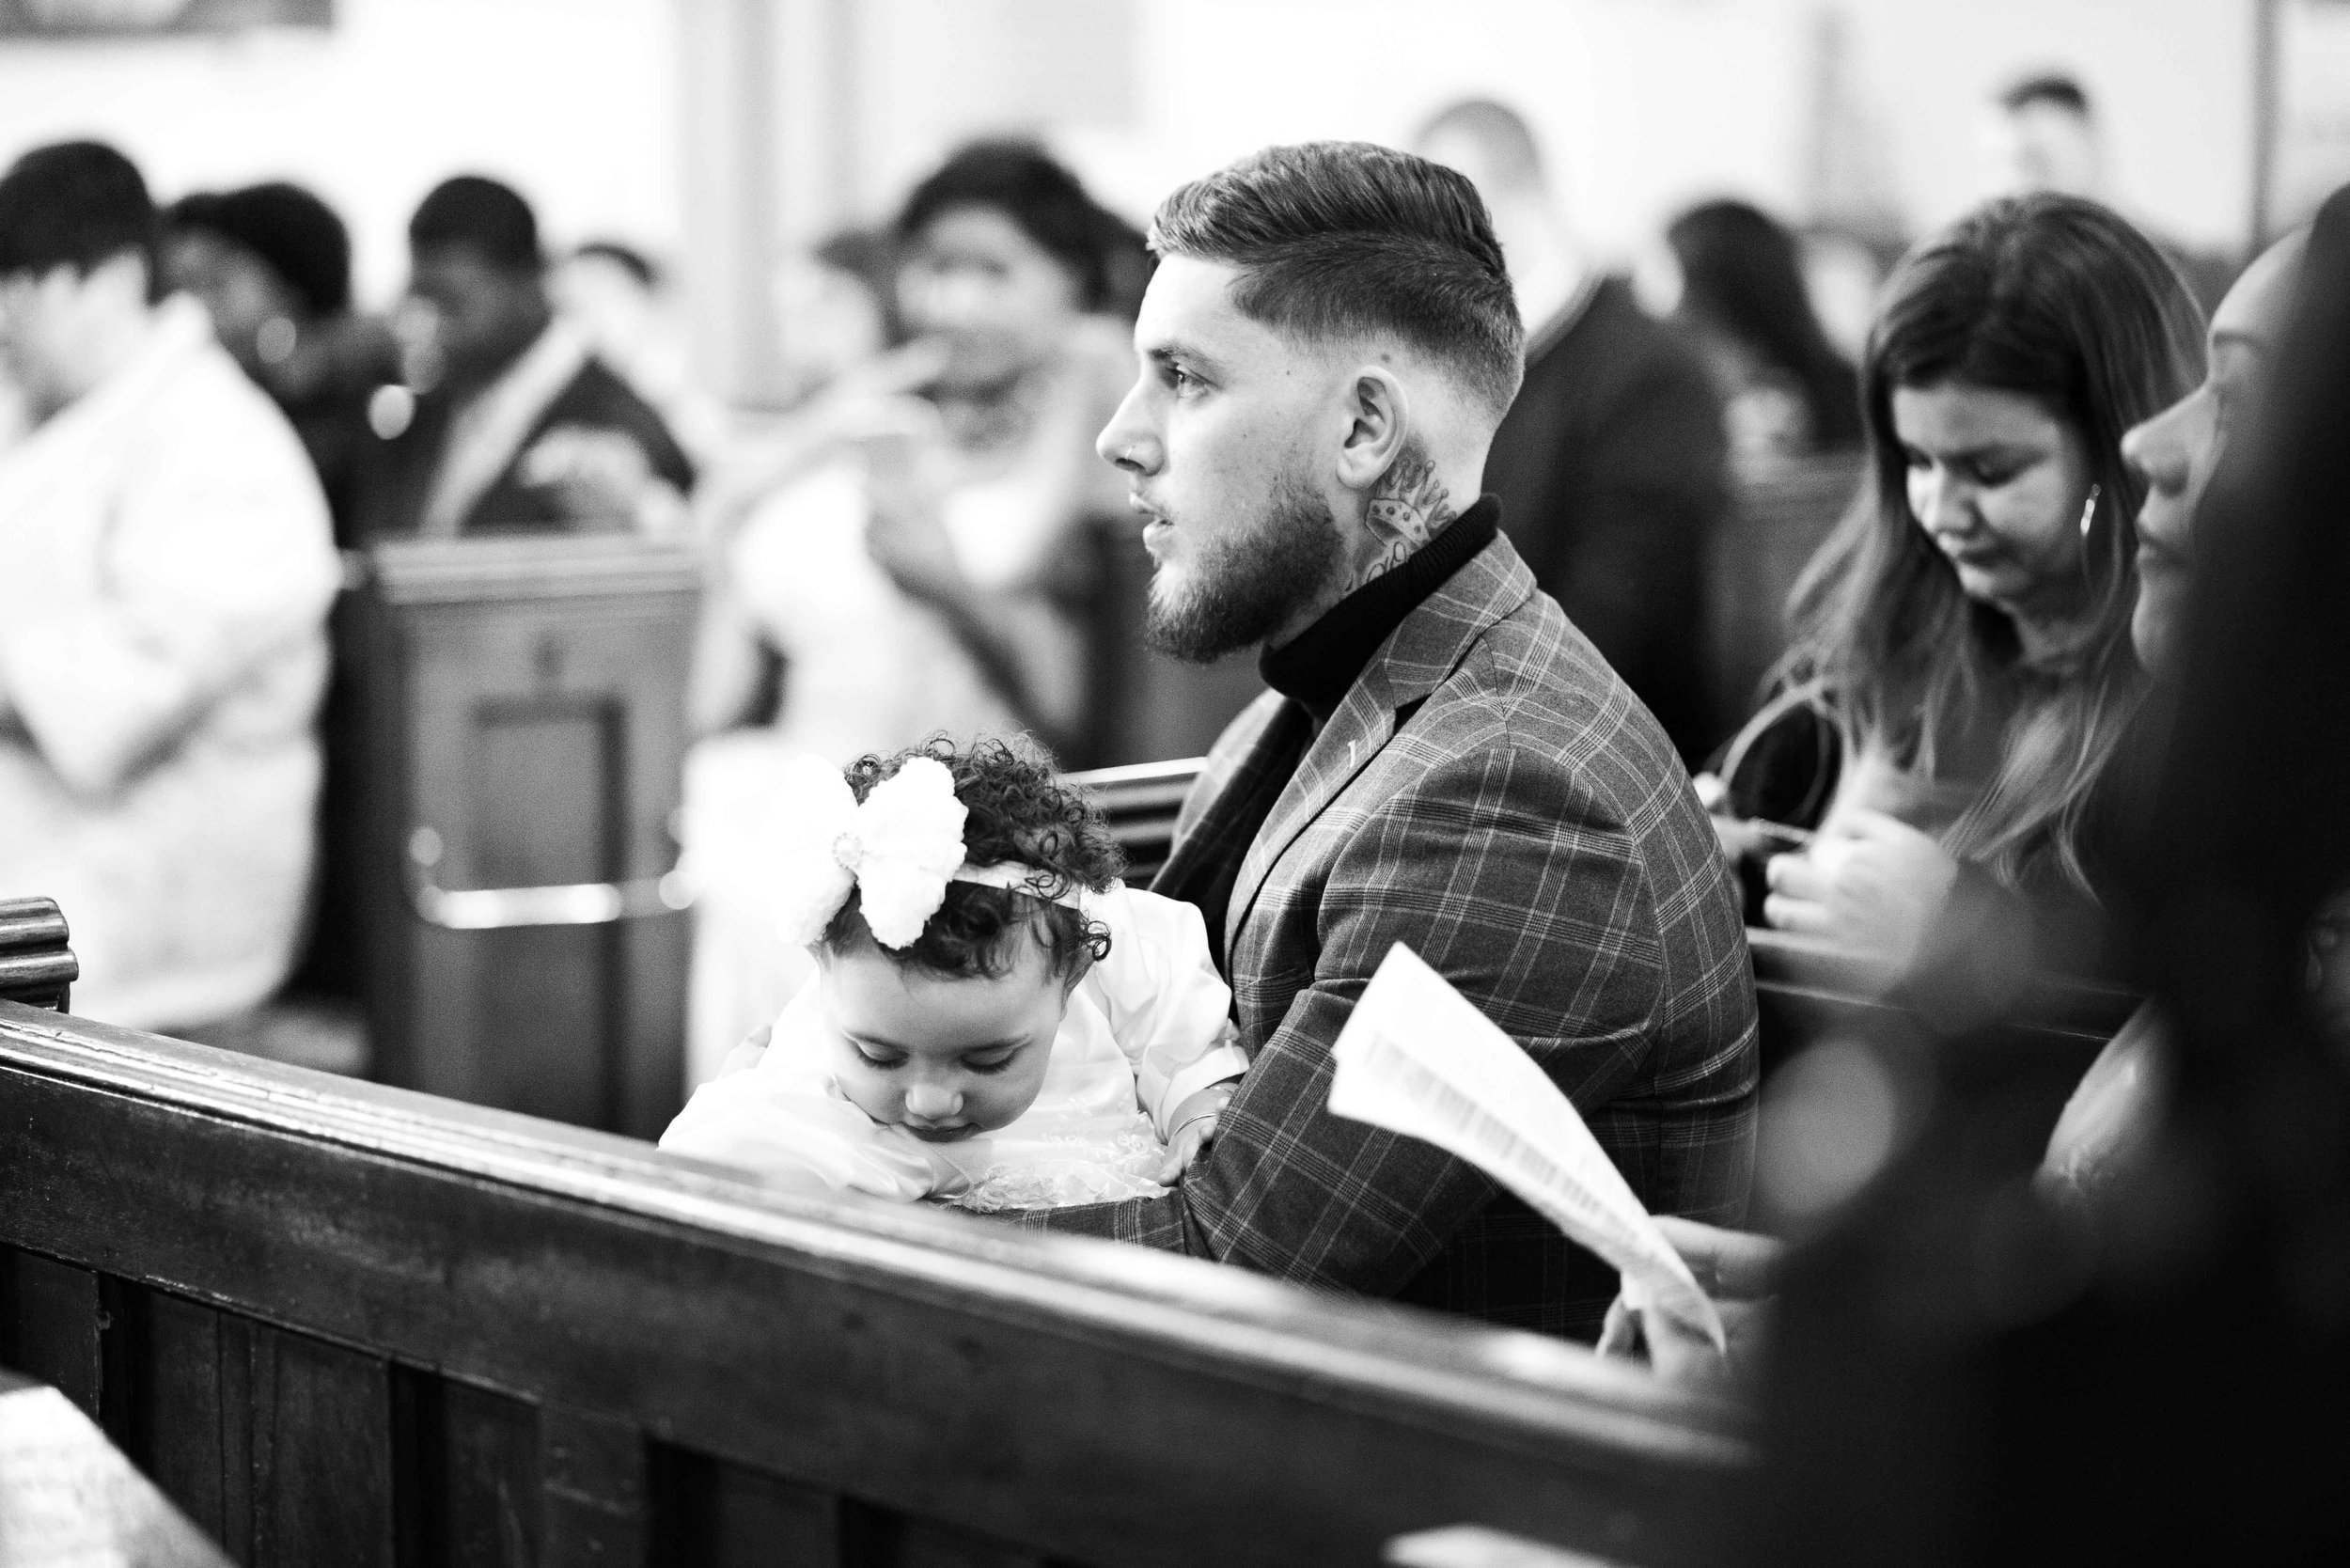 Lea-cooper-photography-christening-photographer-baptism-wolverhampton-wednesbury-walsall-willenhall-dudley-church-chapel-event-photography-11.jpg